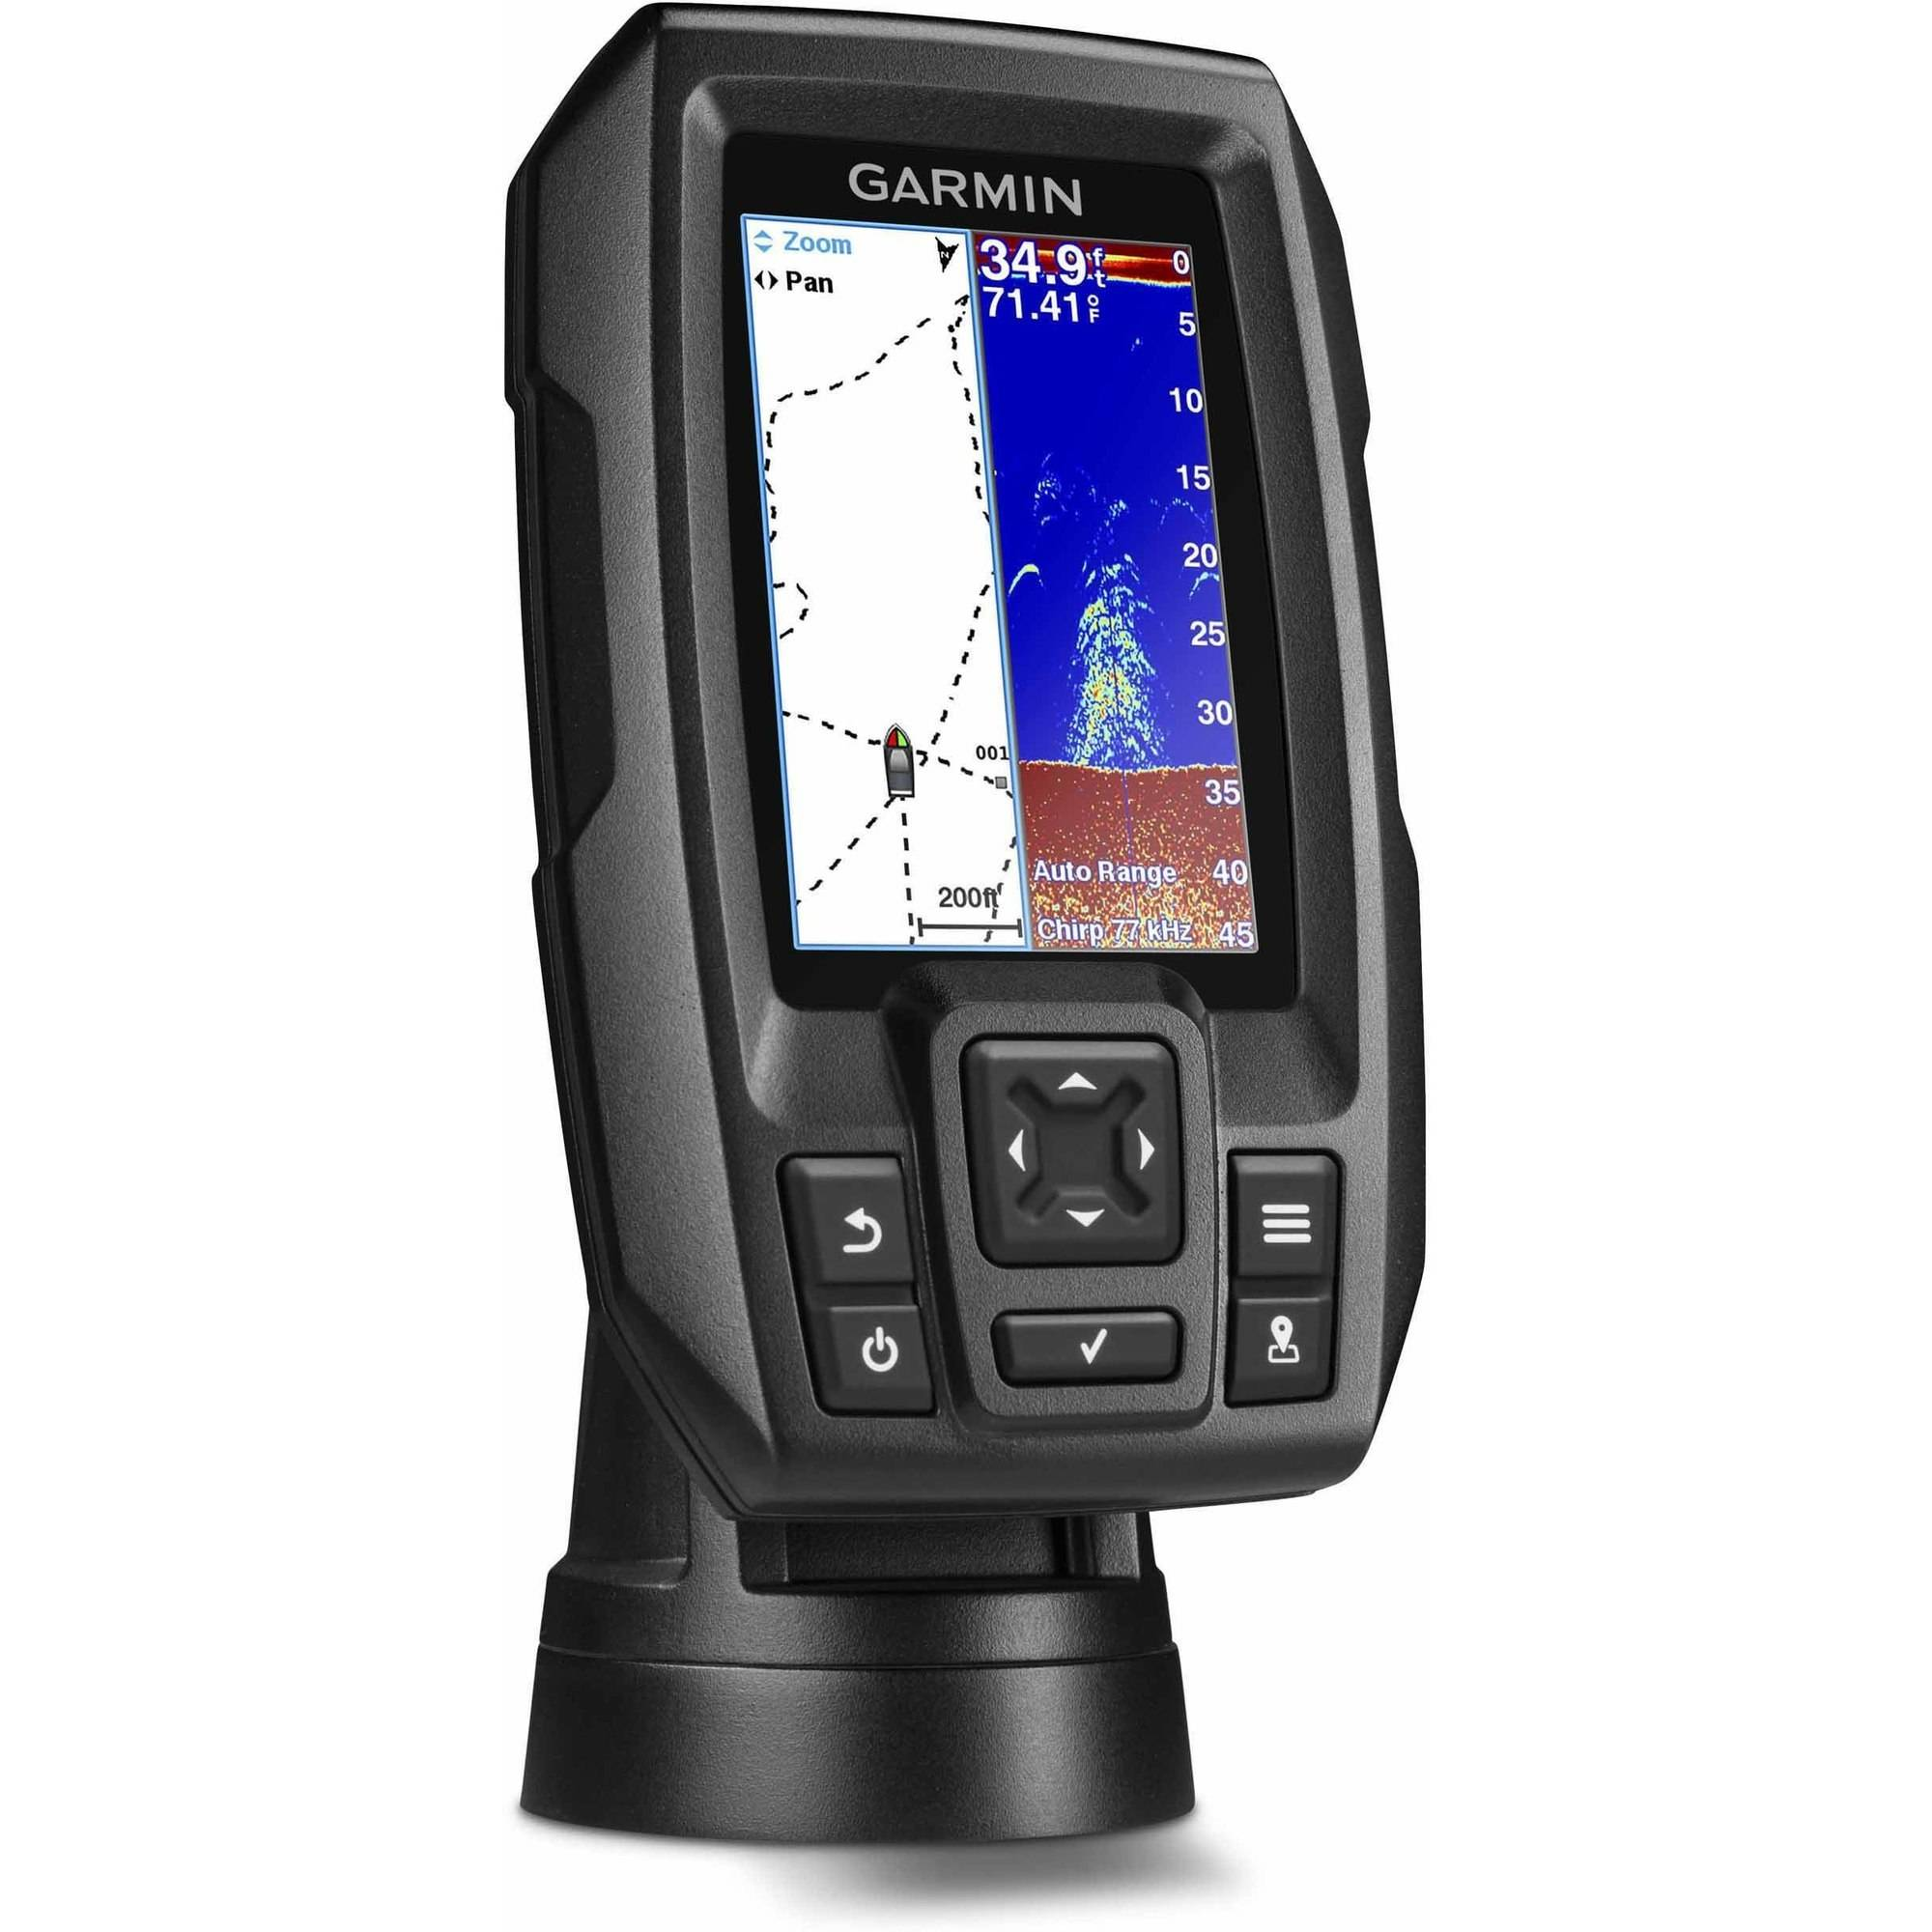 Garmin fish finder transducer fishfinder gps fishing for Fish finder depth finder